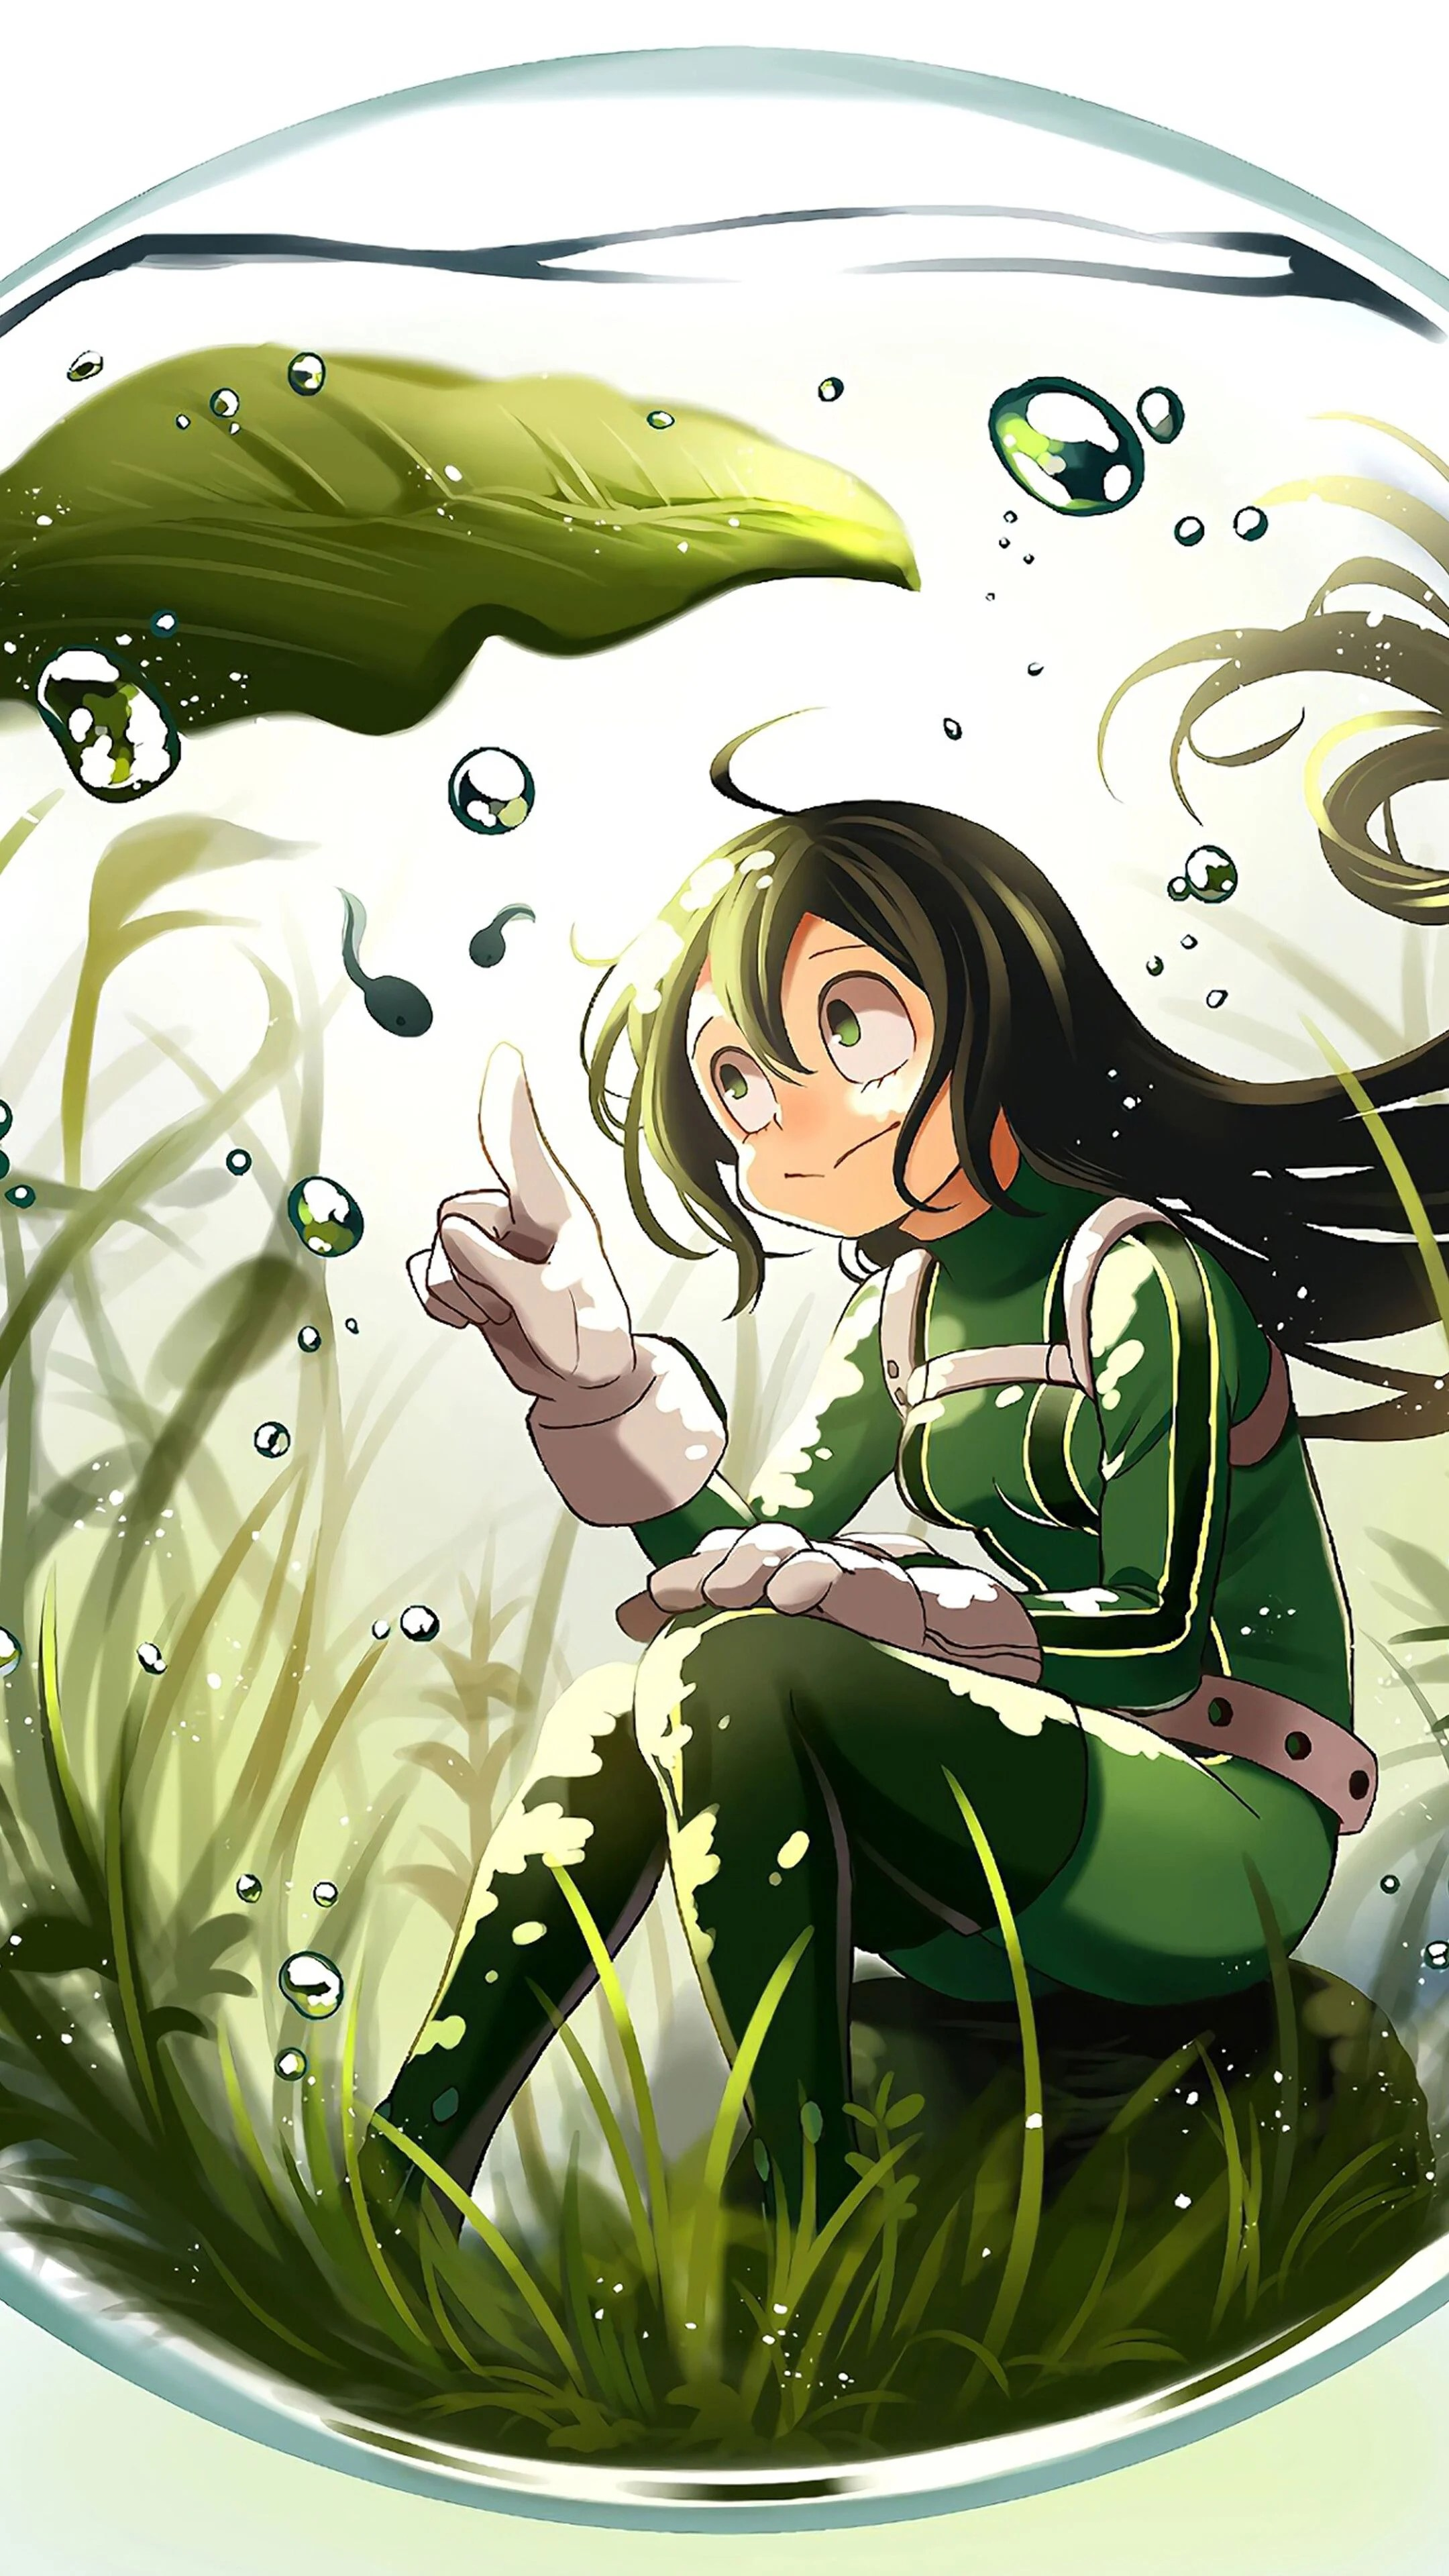 Download wallpapers from anime my hero academia for monitor with resolution 1920x1080 and tags on page: My Hero Academia Froppy Wallpapers - Wallpaper Cave